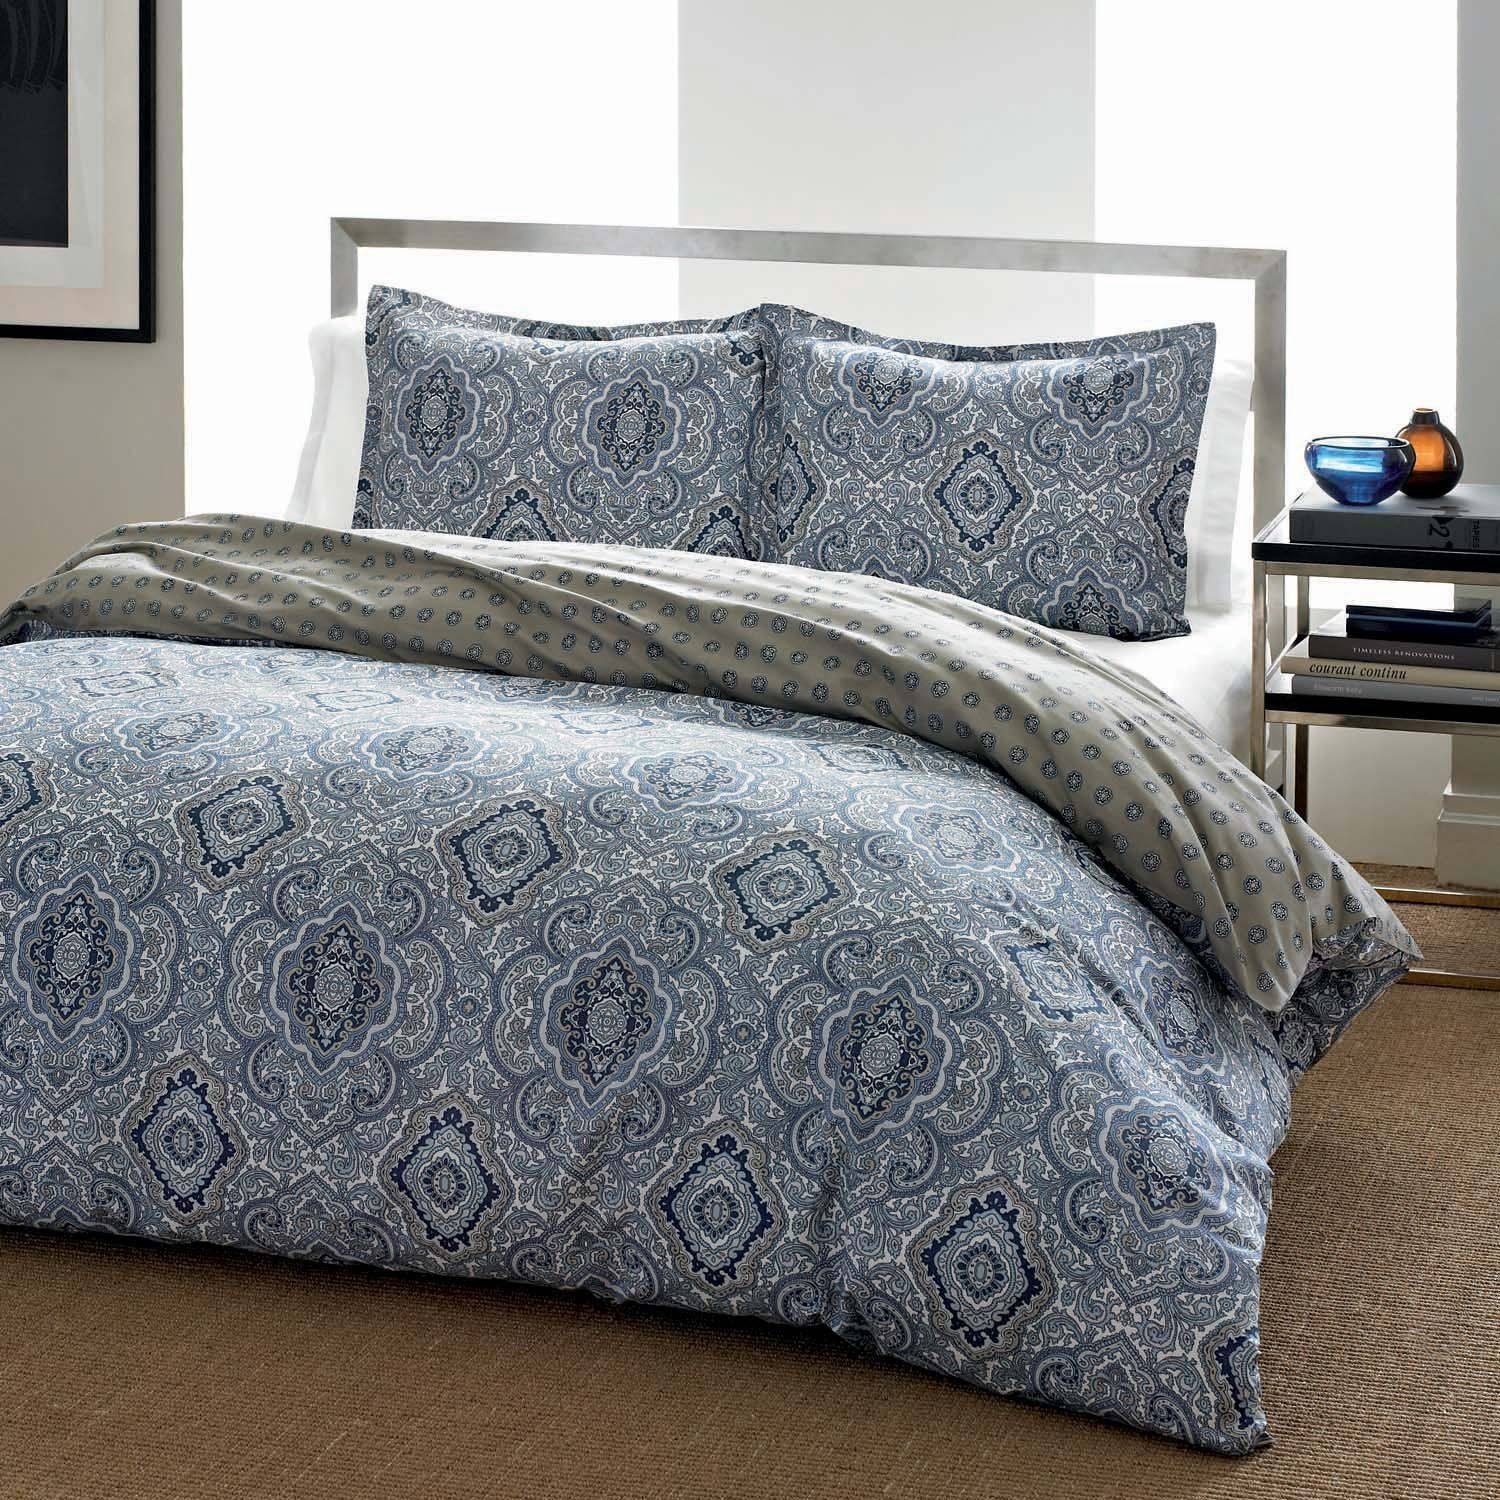 eafacddffeb - blue duvet cover set the duvets